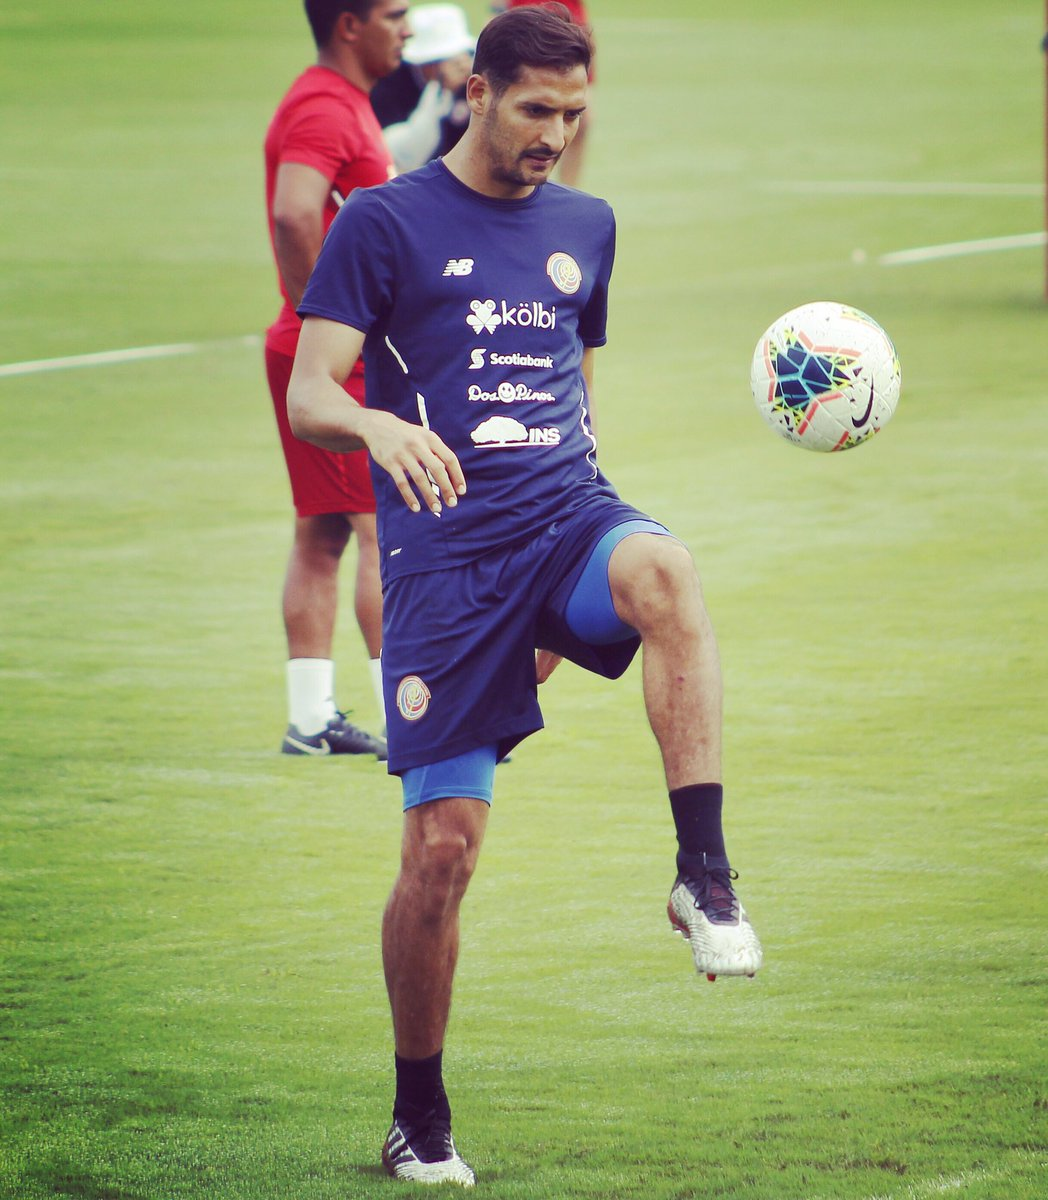 Celso Borges @CelsoBorgesCR